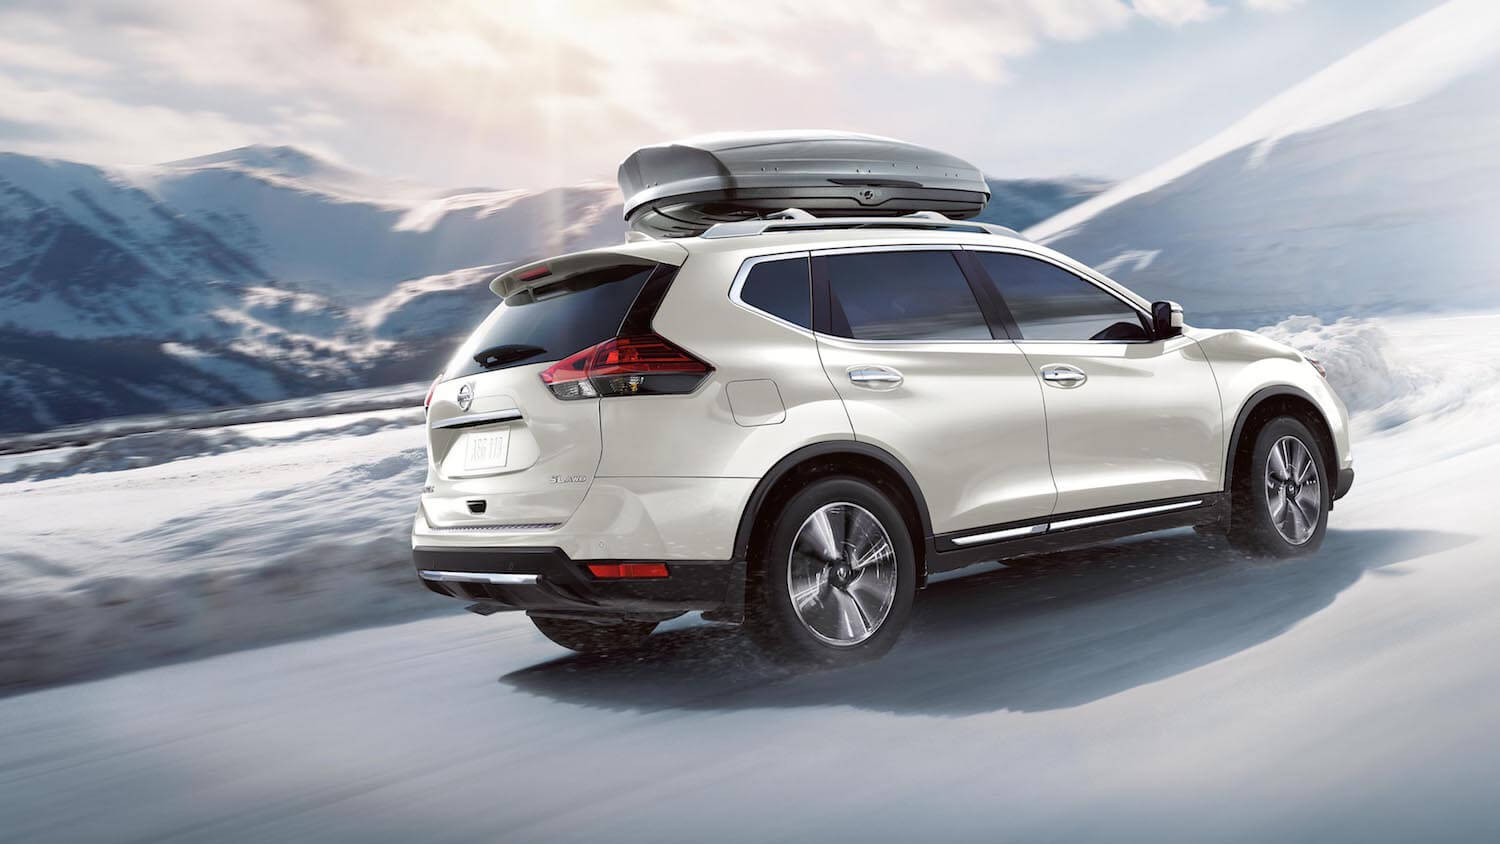 New 2020 Nissan Rogue at our Henderson Nissan dealership near Las Vegas